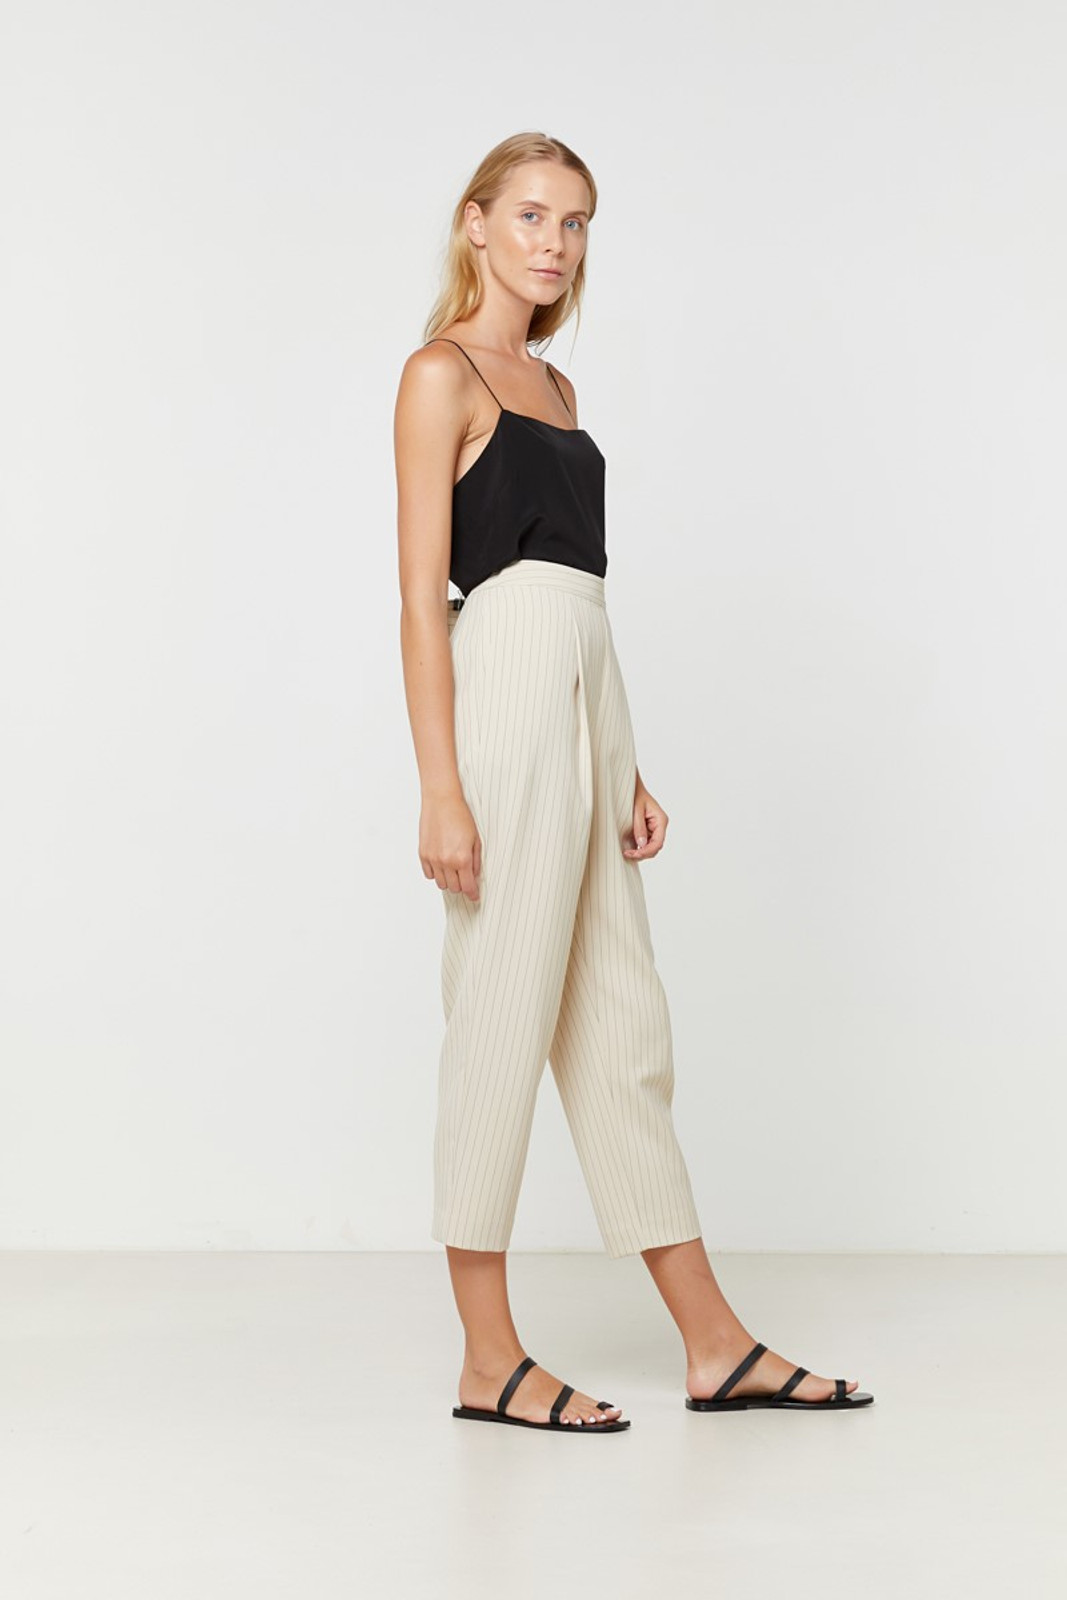 Elka Collective Everly Pant Neutrals  3